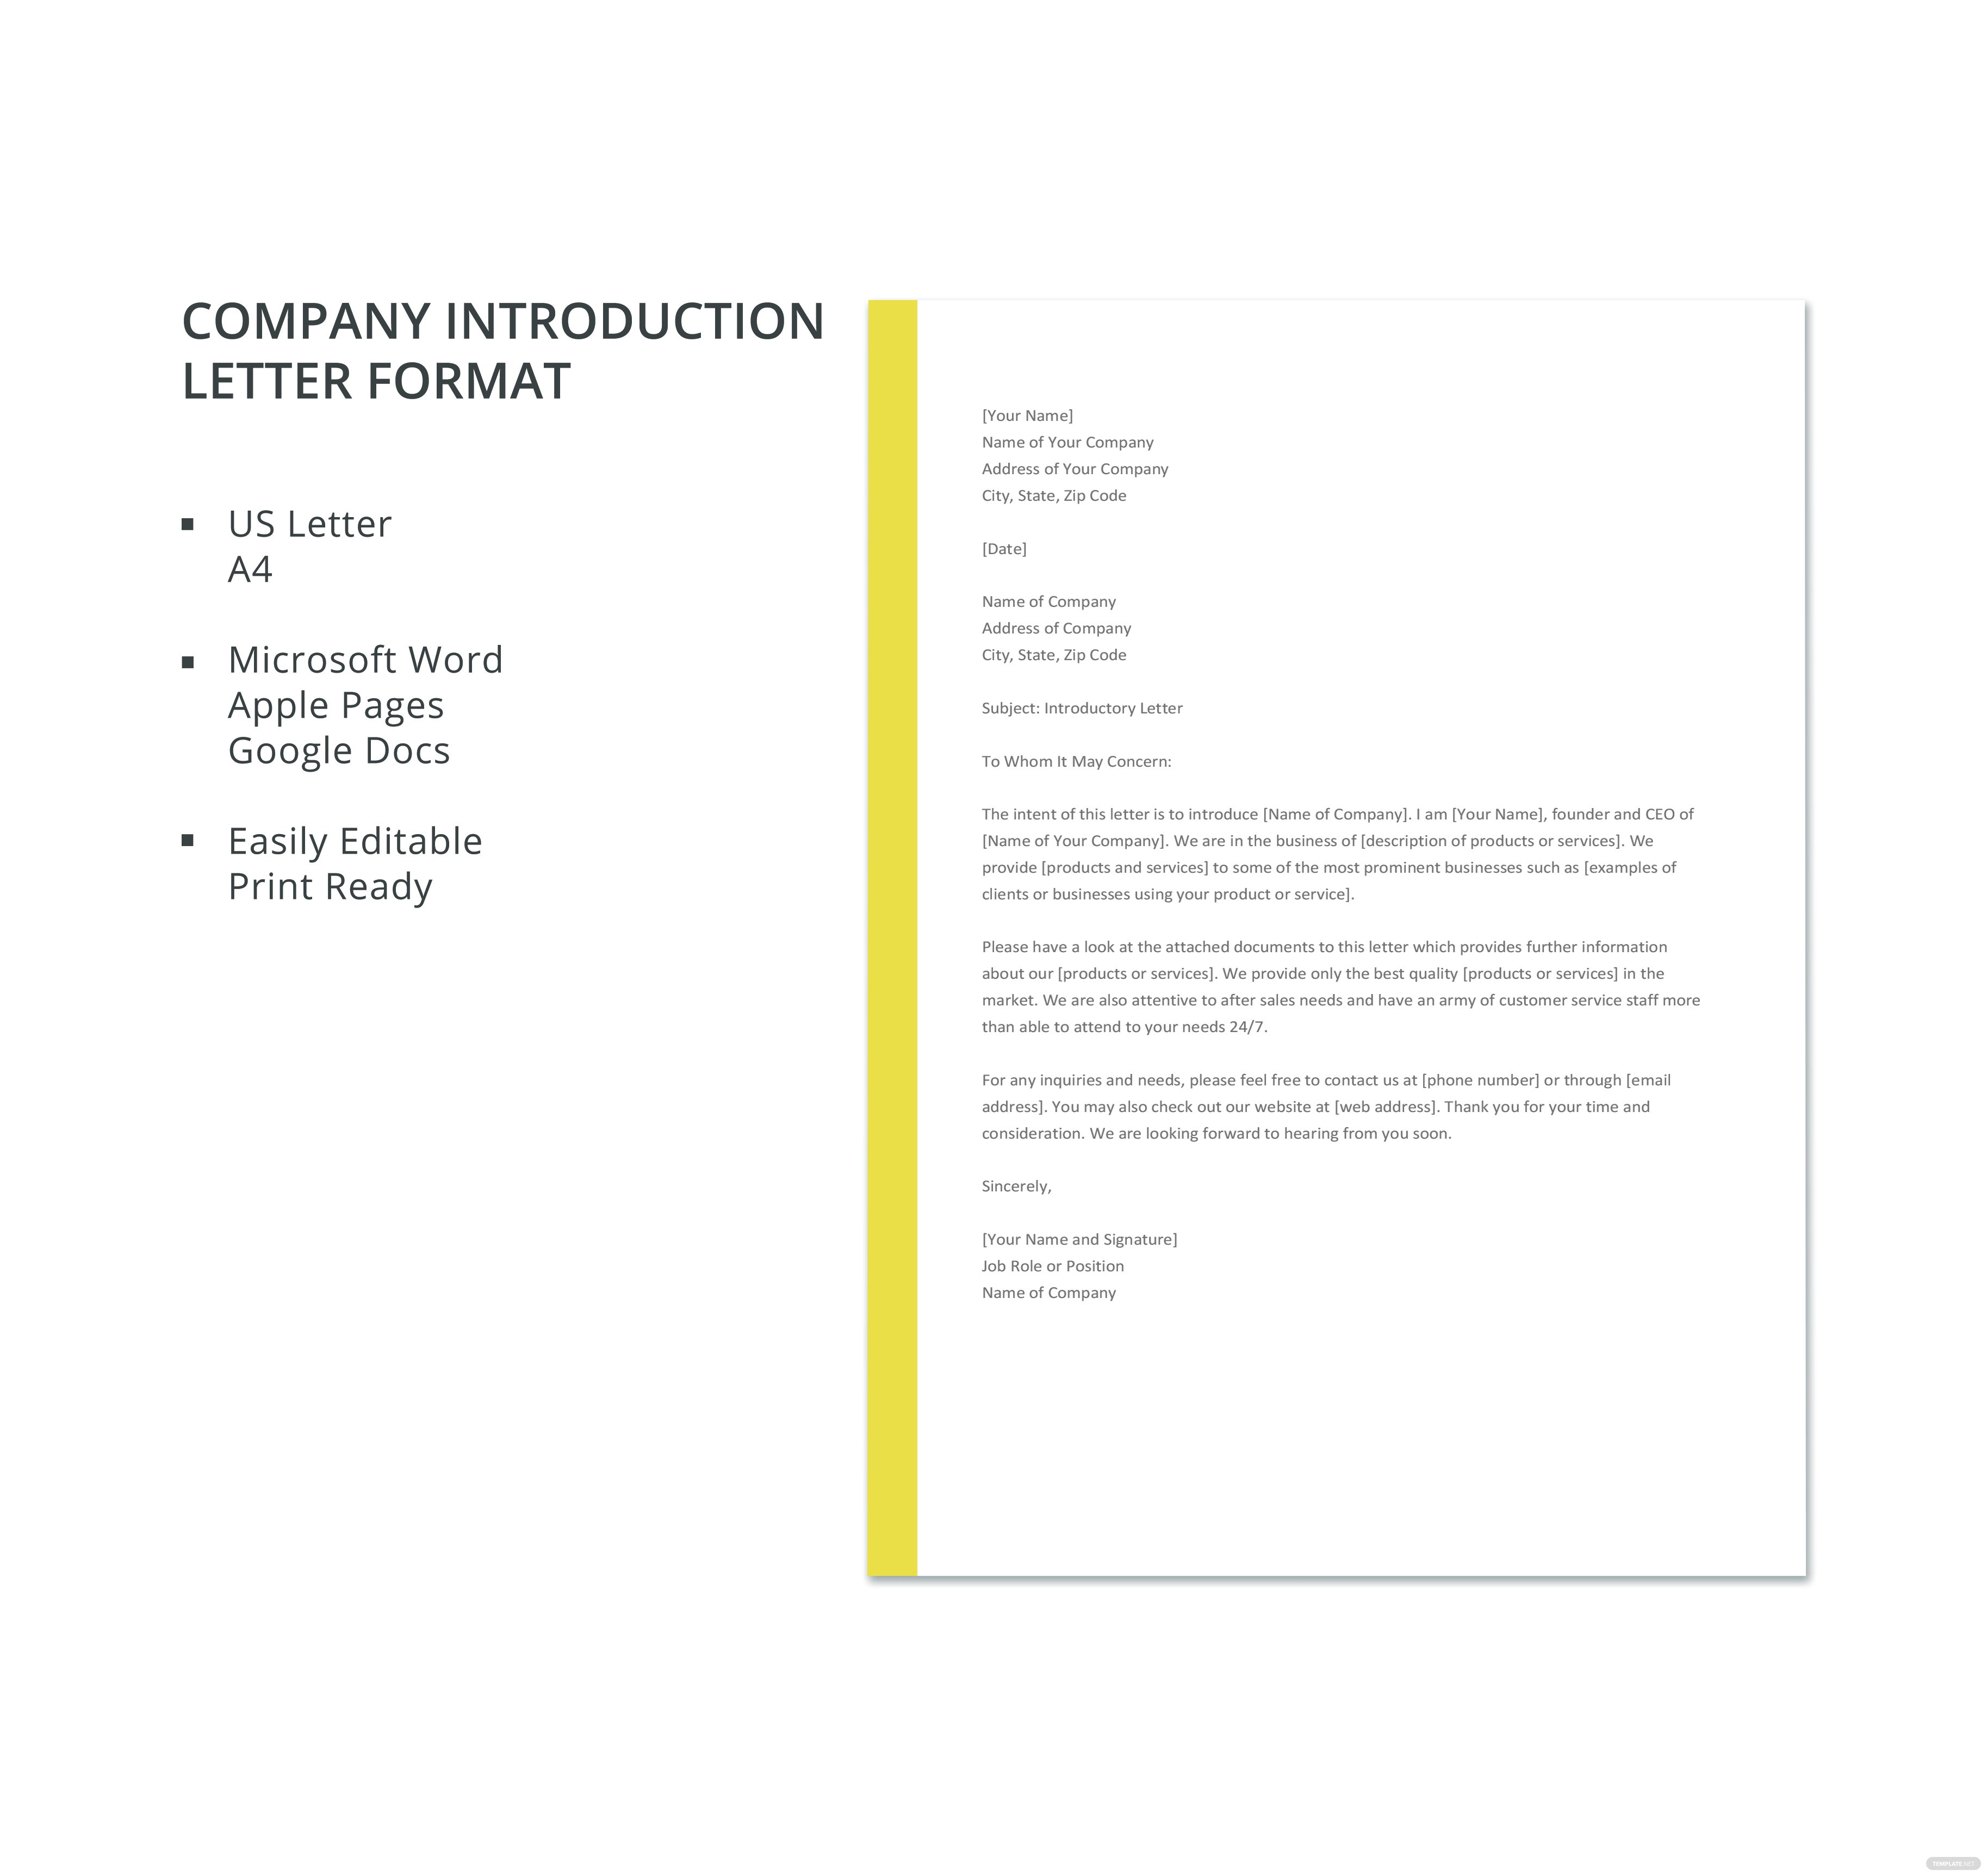 click to see full template company introduction letter format